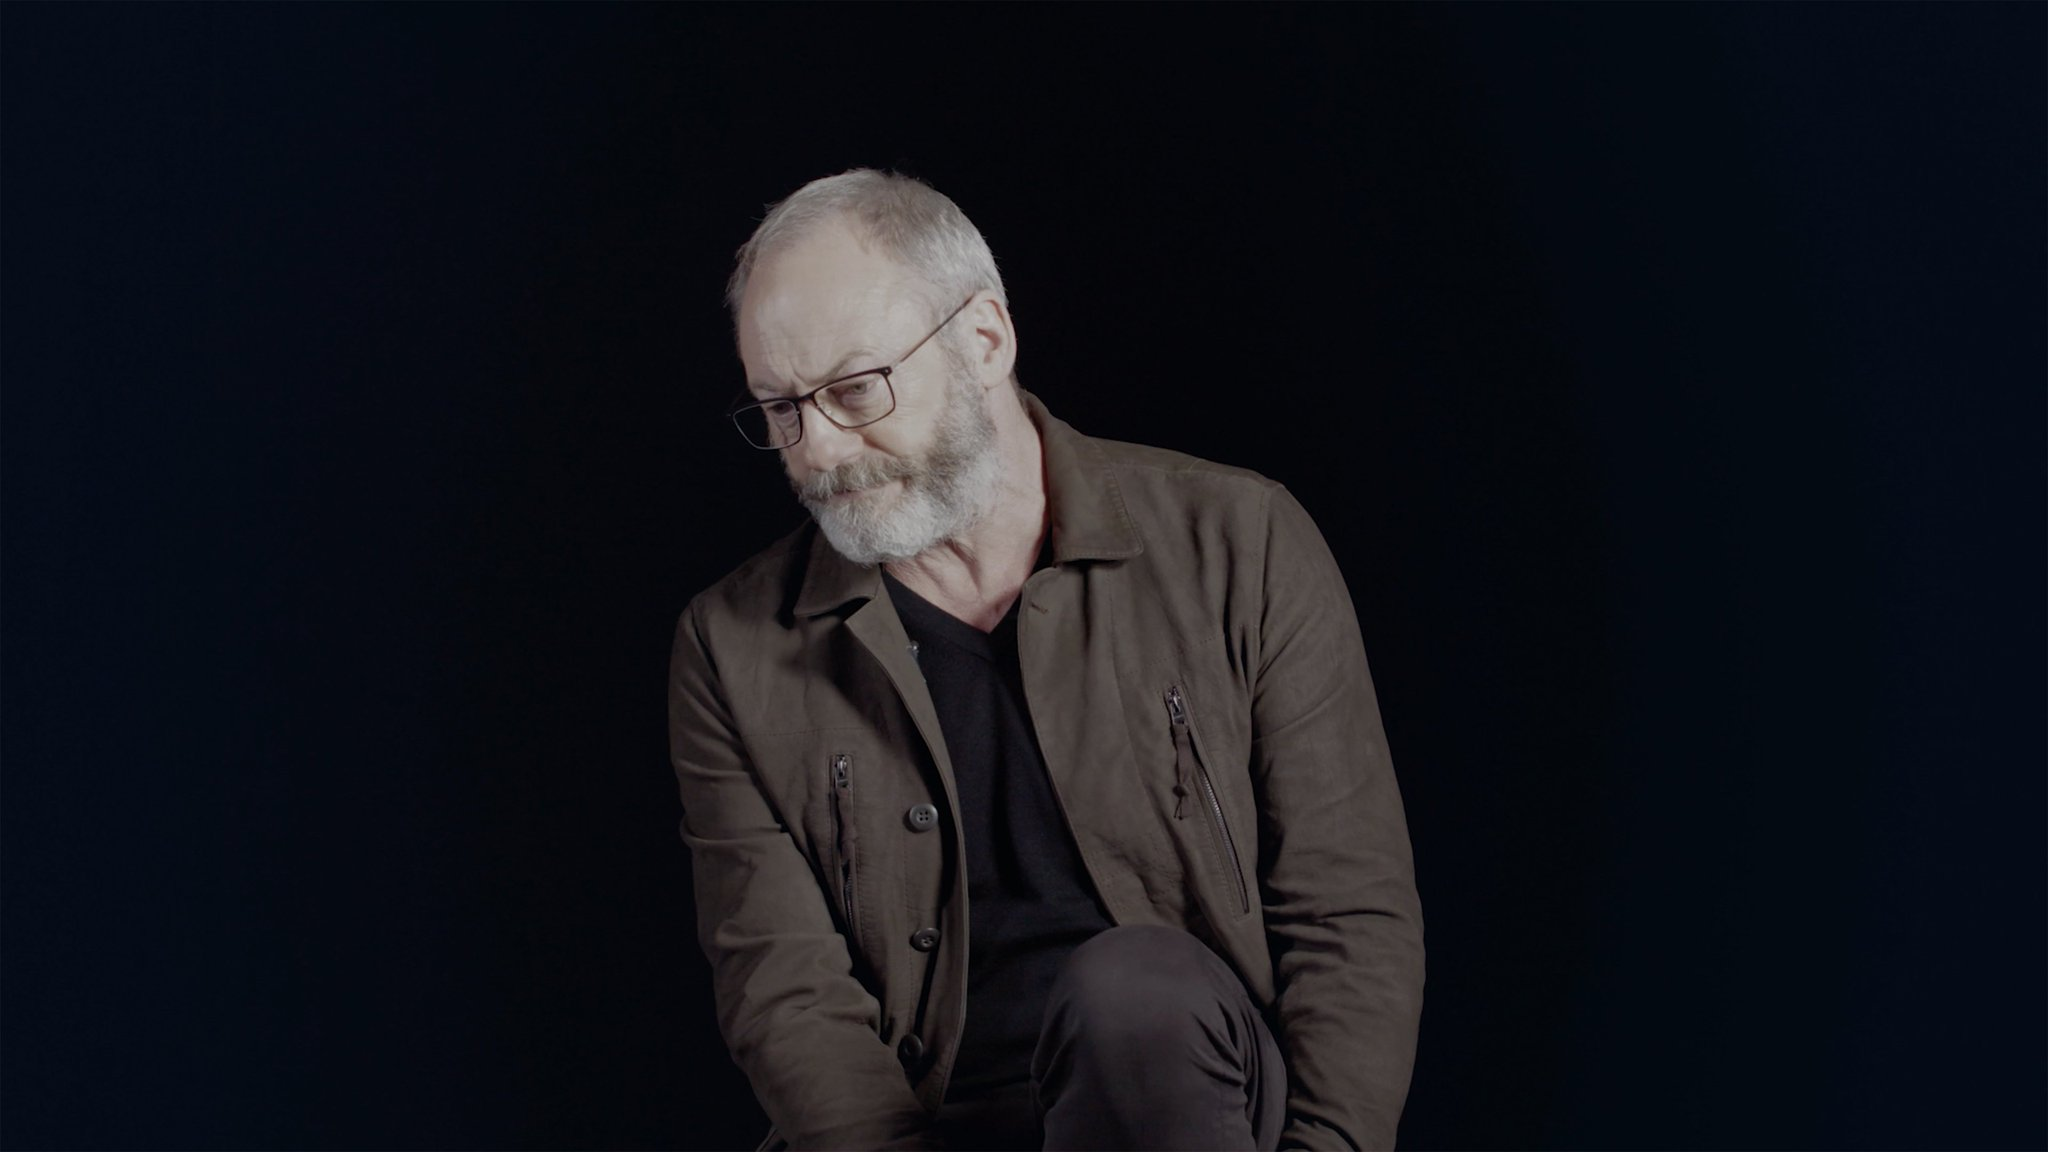 Liam Cunningham discusses Philip K. Dick's 'Electric Dreams,' working with Bryan Cranston and more https://t.co/8UeONcxLe1